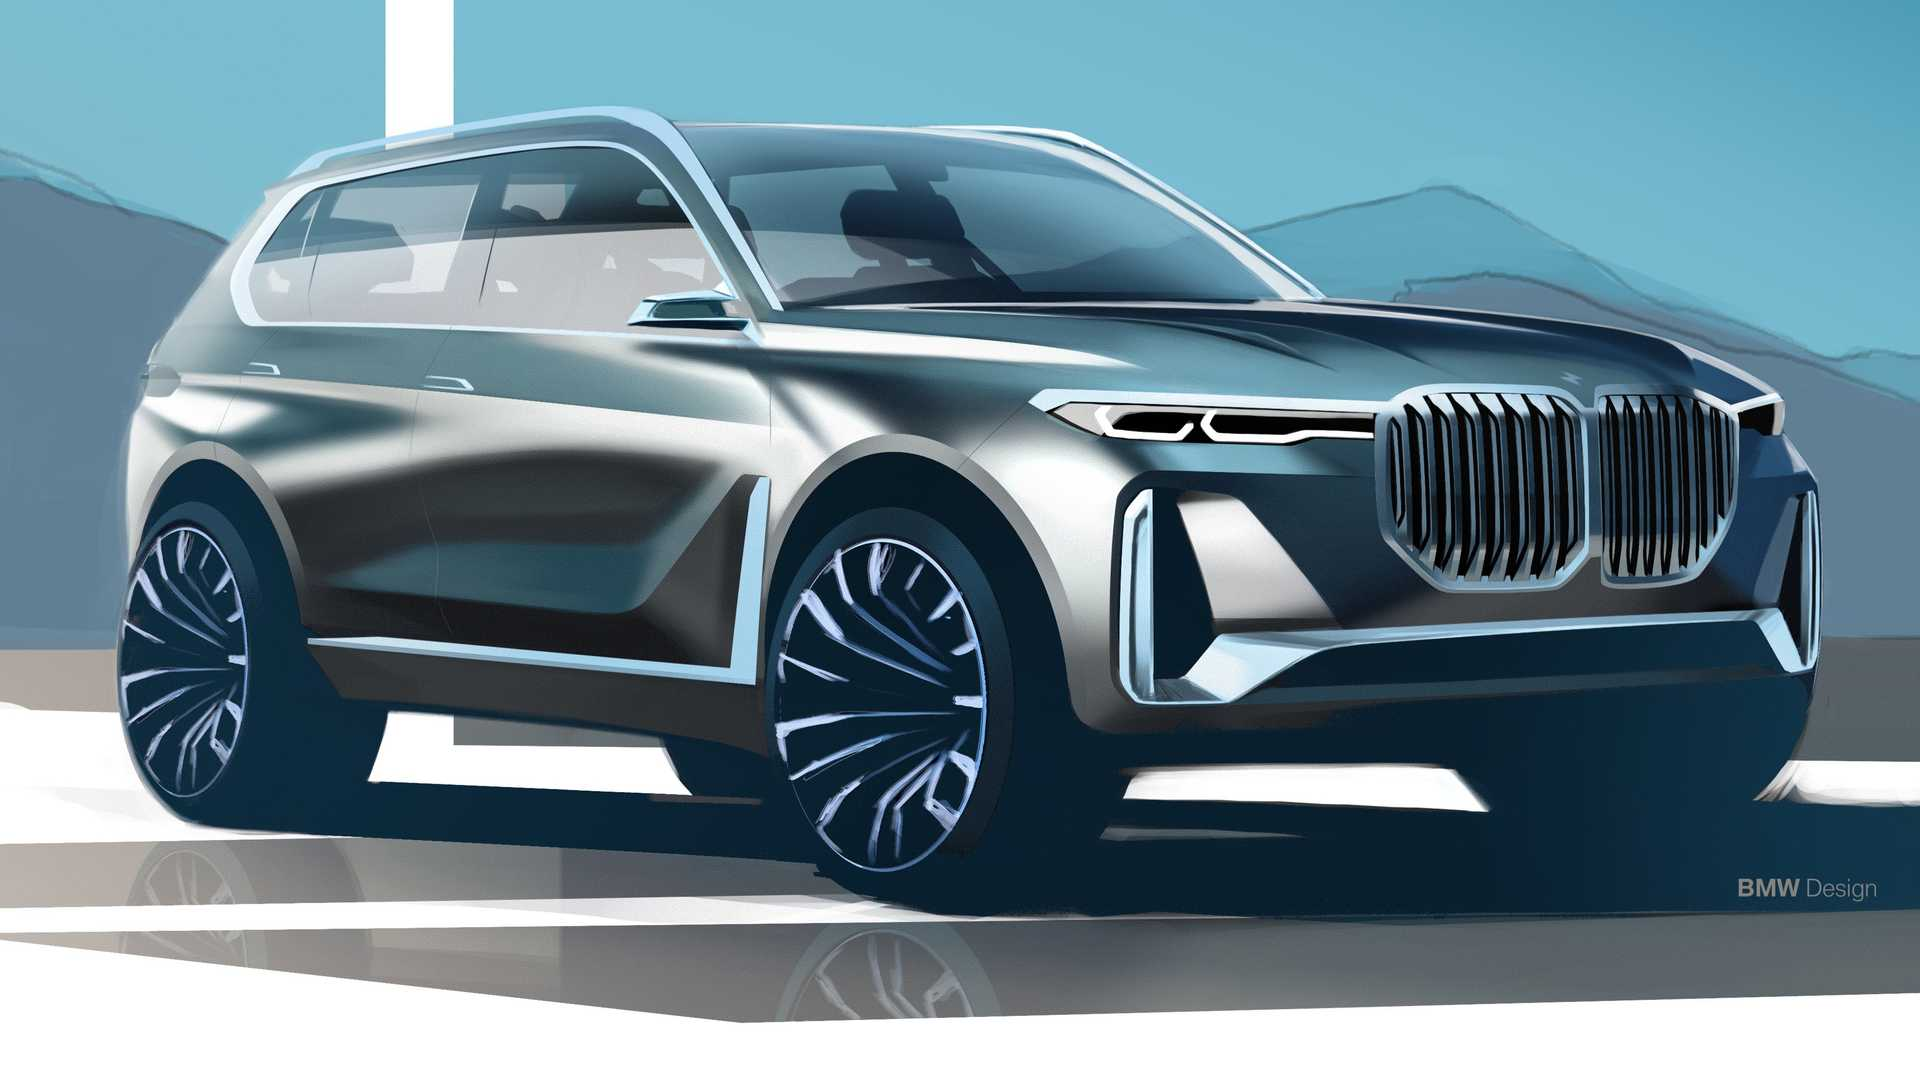 Bmw X8 M Trademark Could Hint At New M Suv Flagship Model